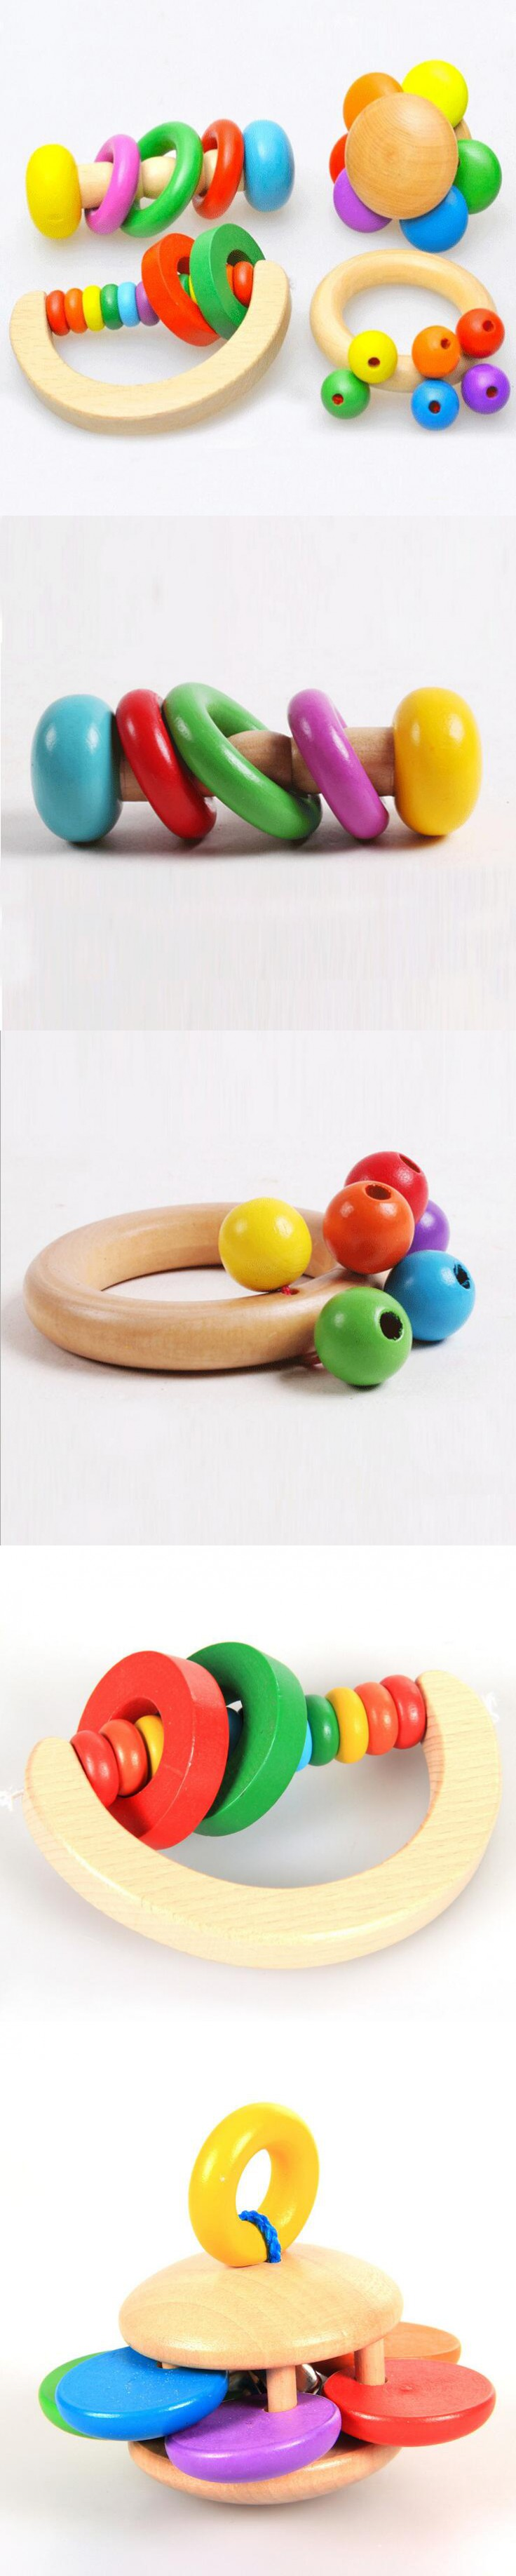 Hot Kid Baby Toys Wooden Bell Rattle Toy Handbell Musical